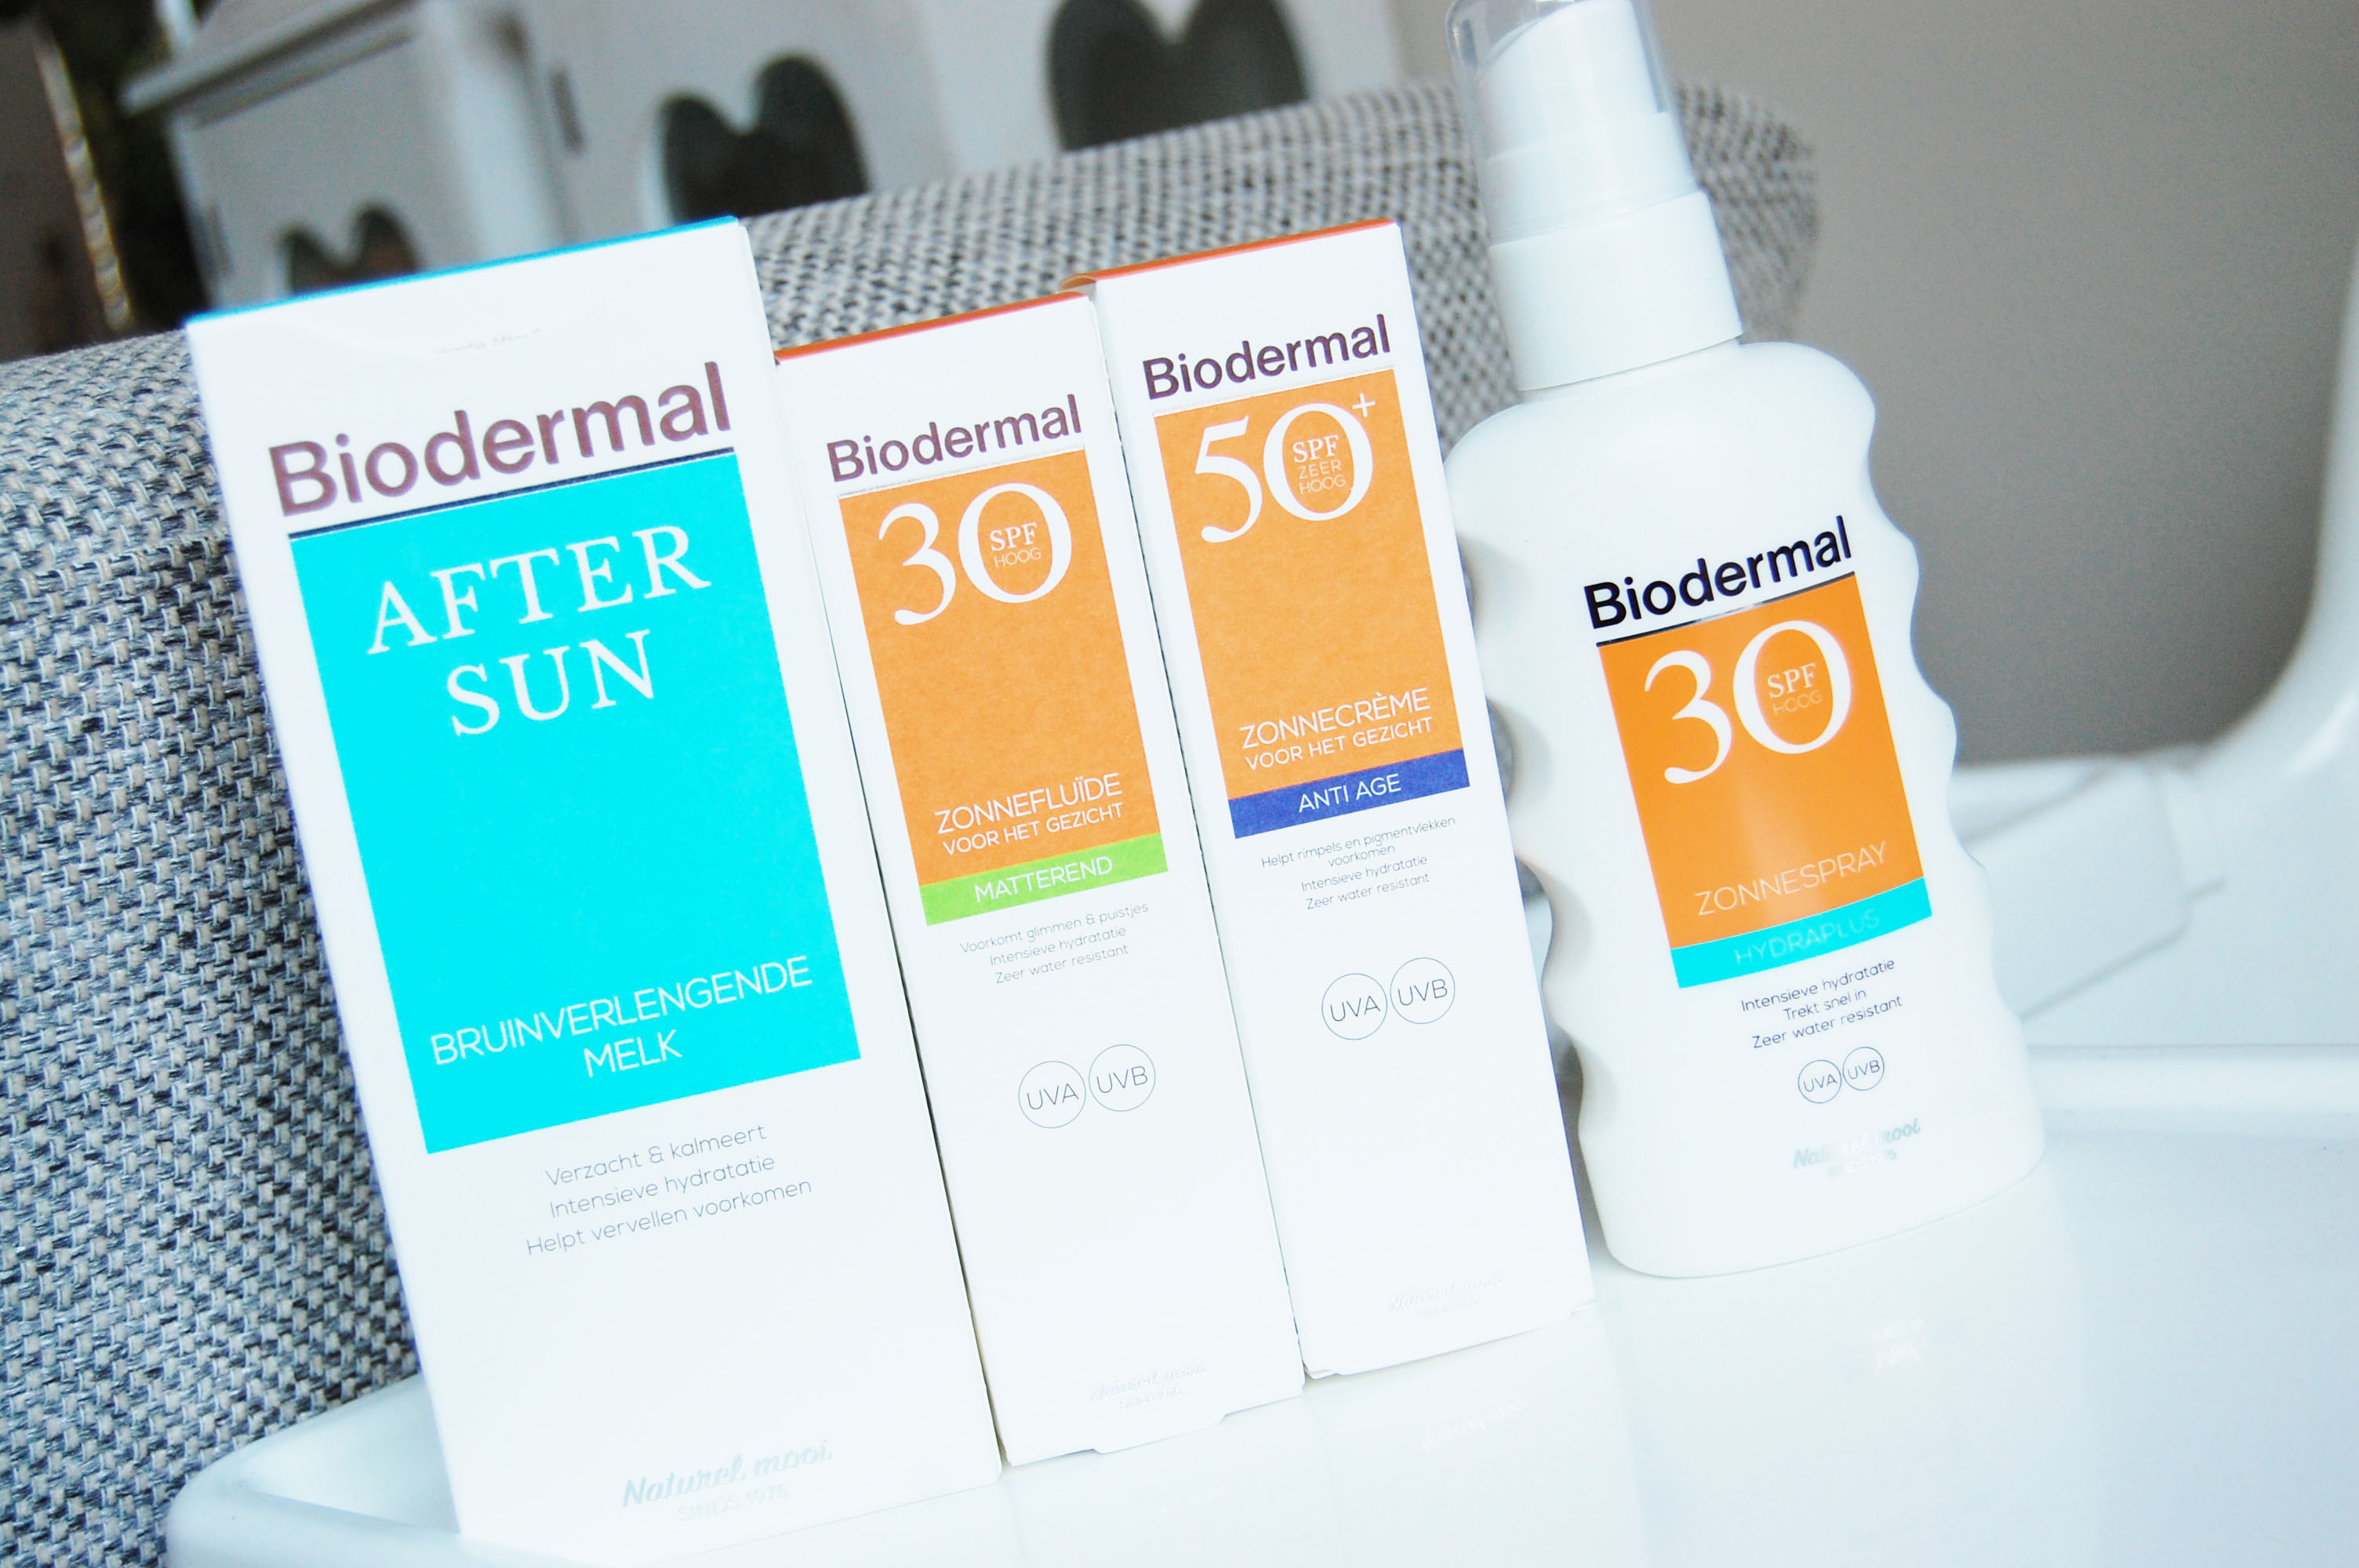 biodermal for men